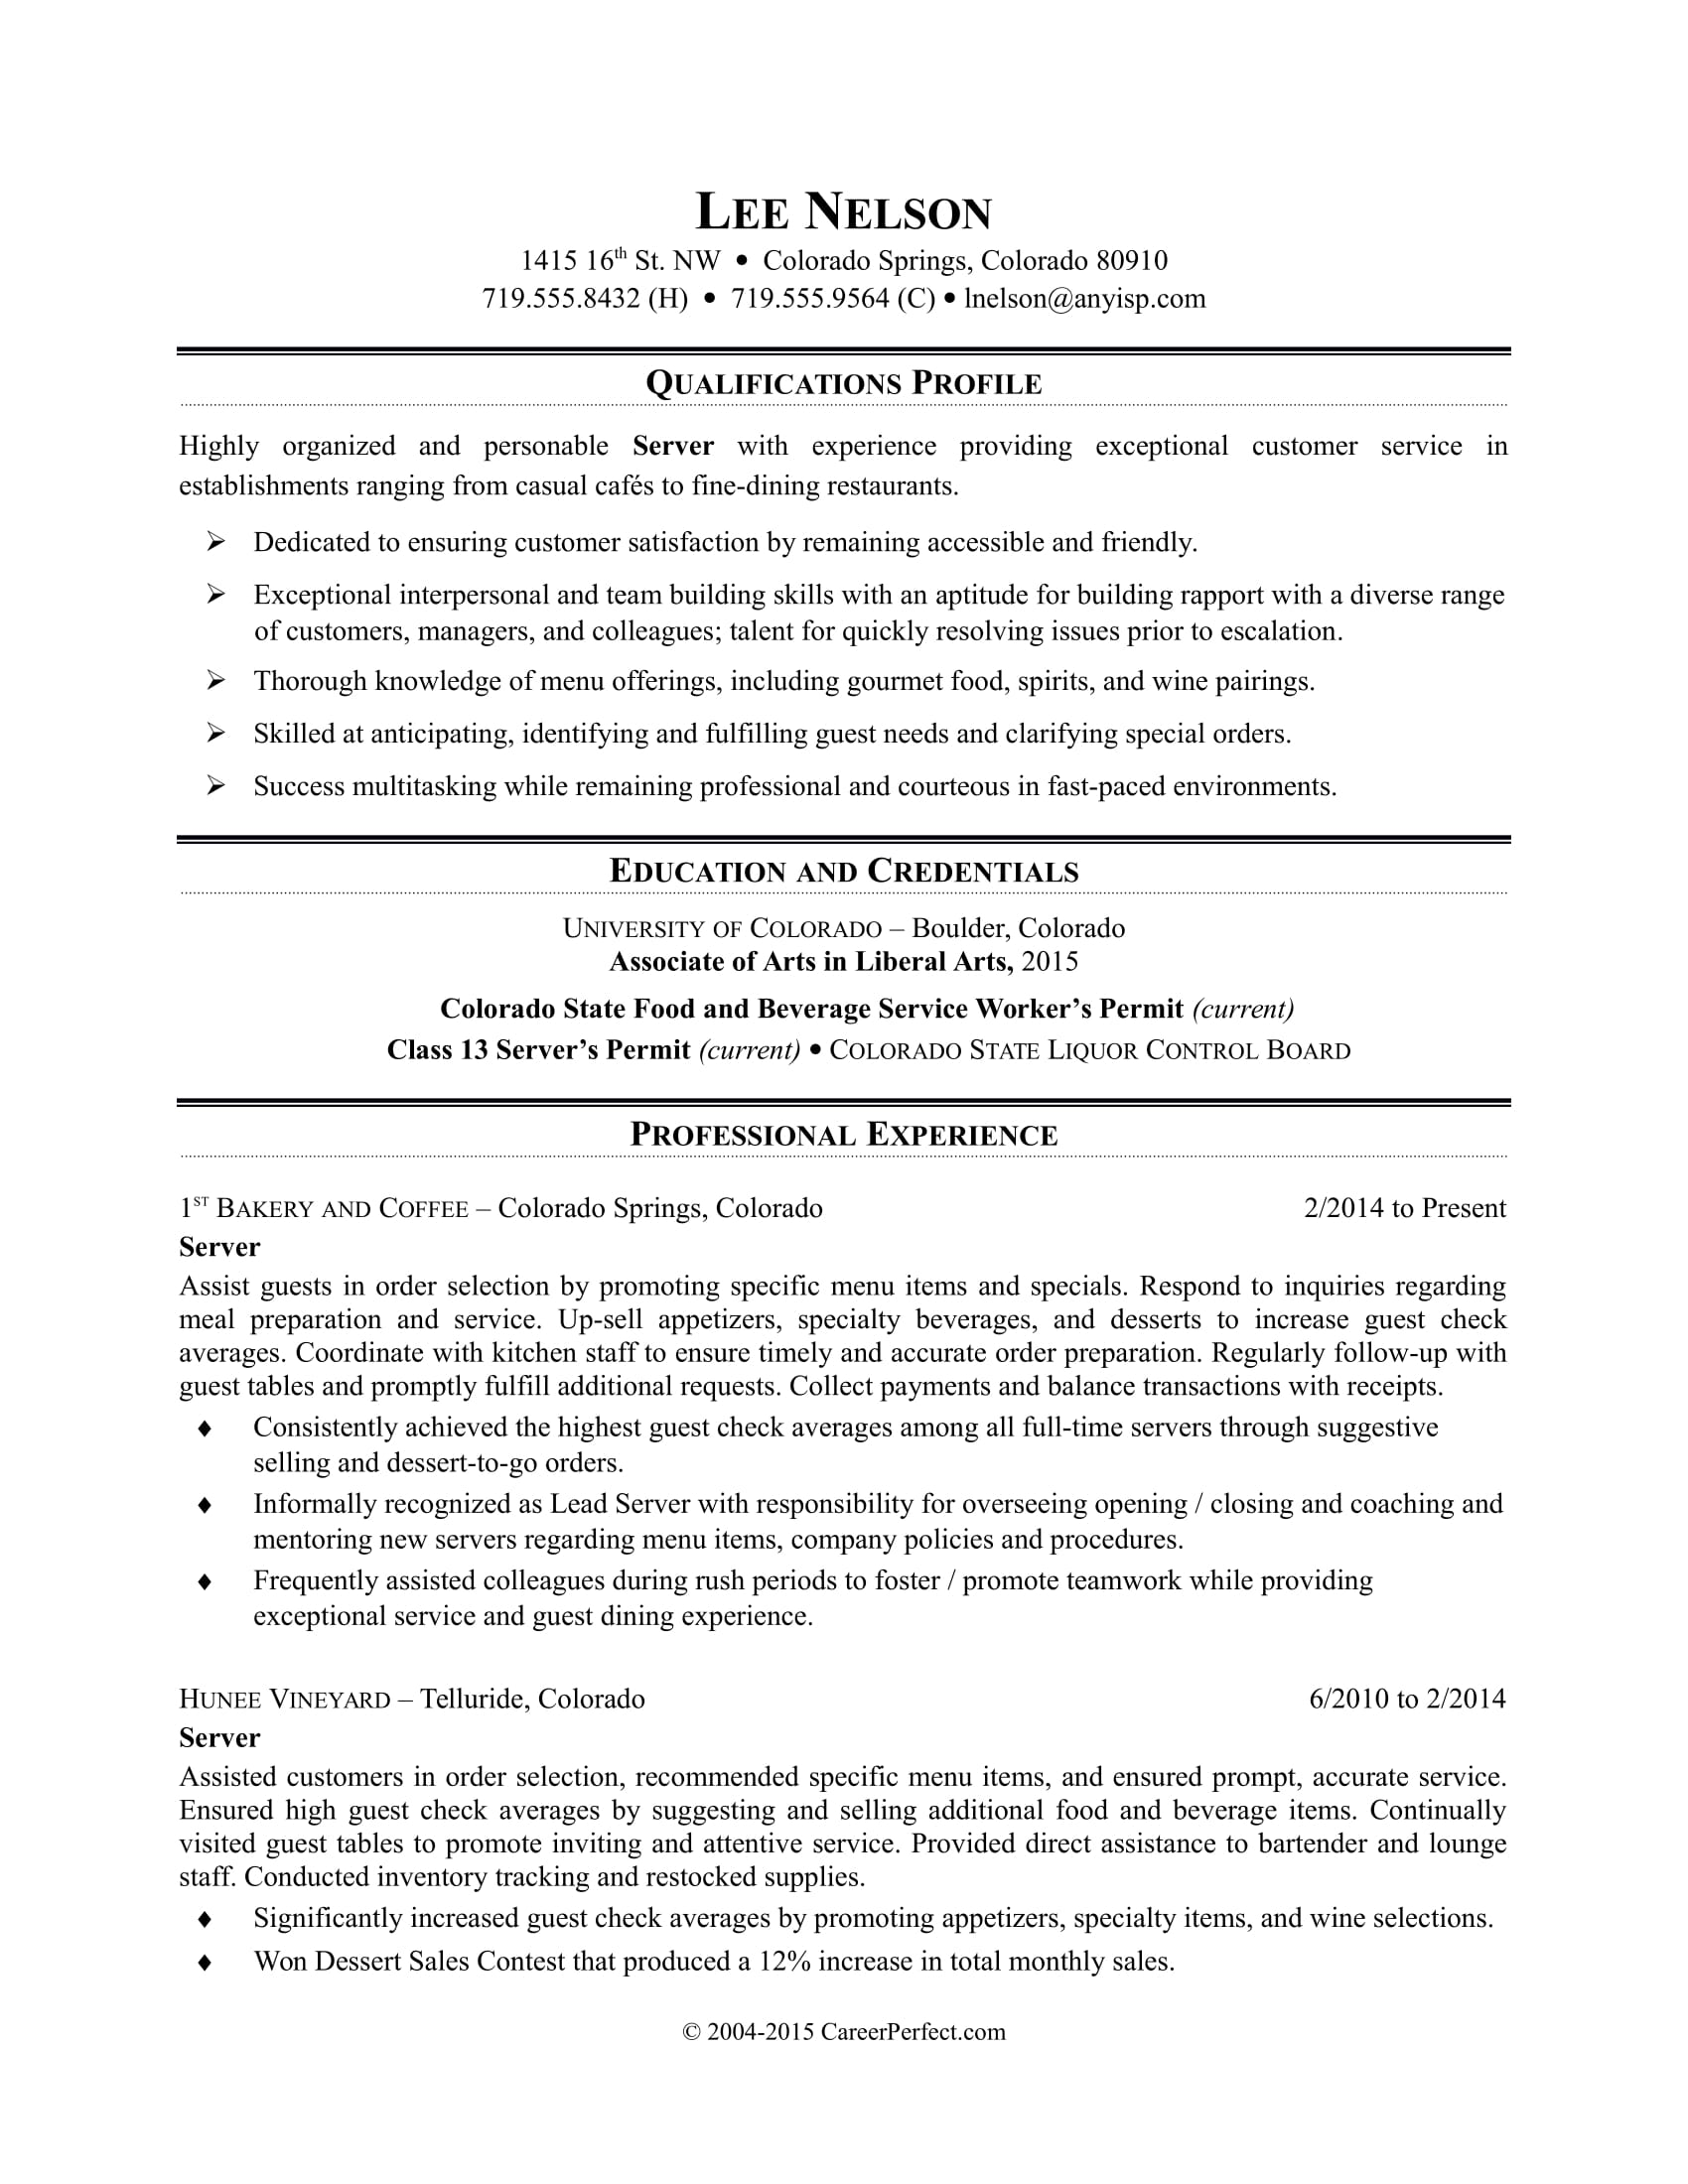 Wonderful Sample Resume For A Restaurant Server And Server Resume Examples